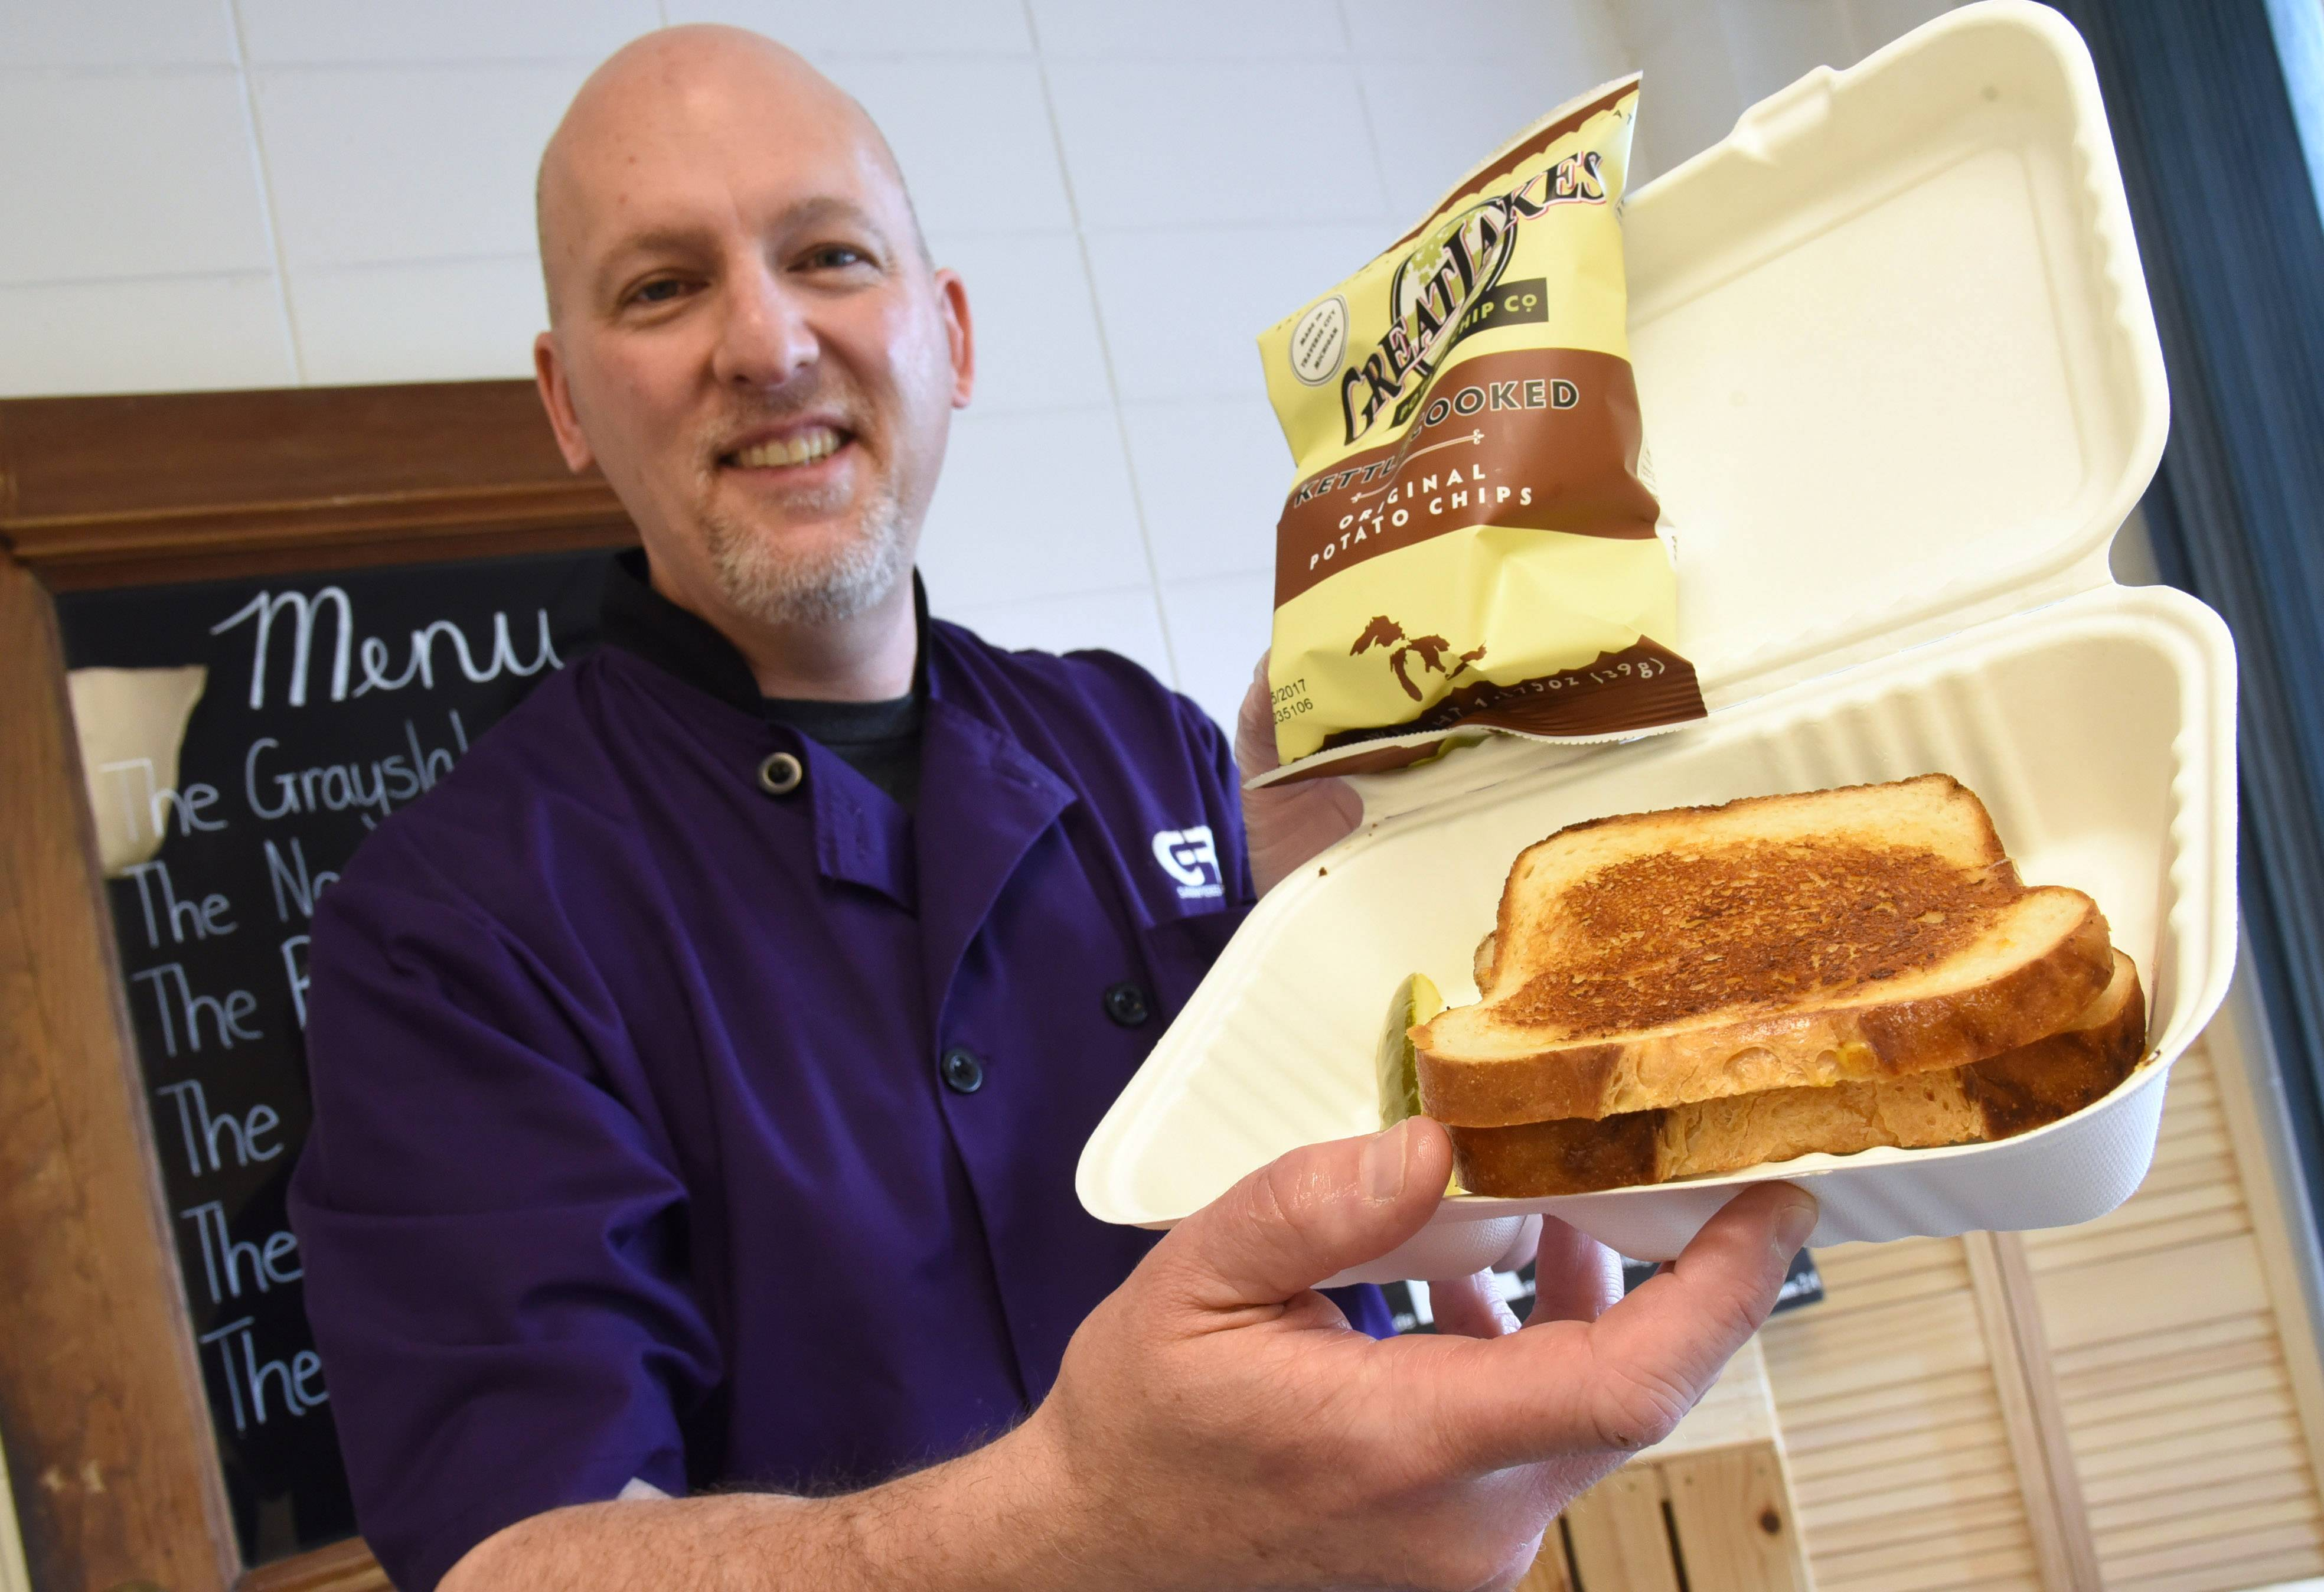 Gourmet grilled cheese sandwich shop moves from Mundelein to Grayslake